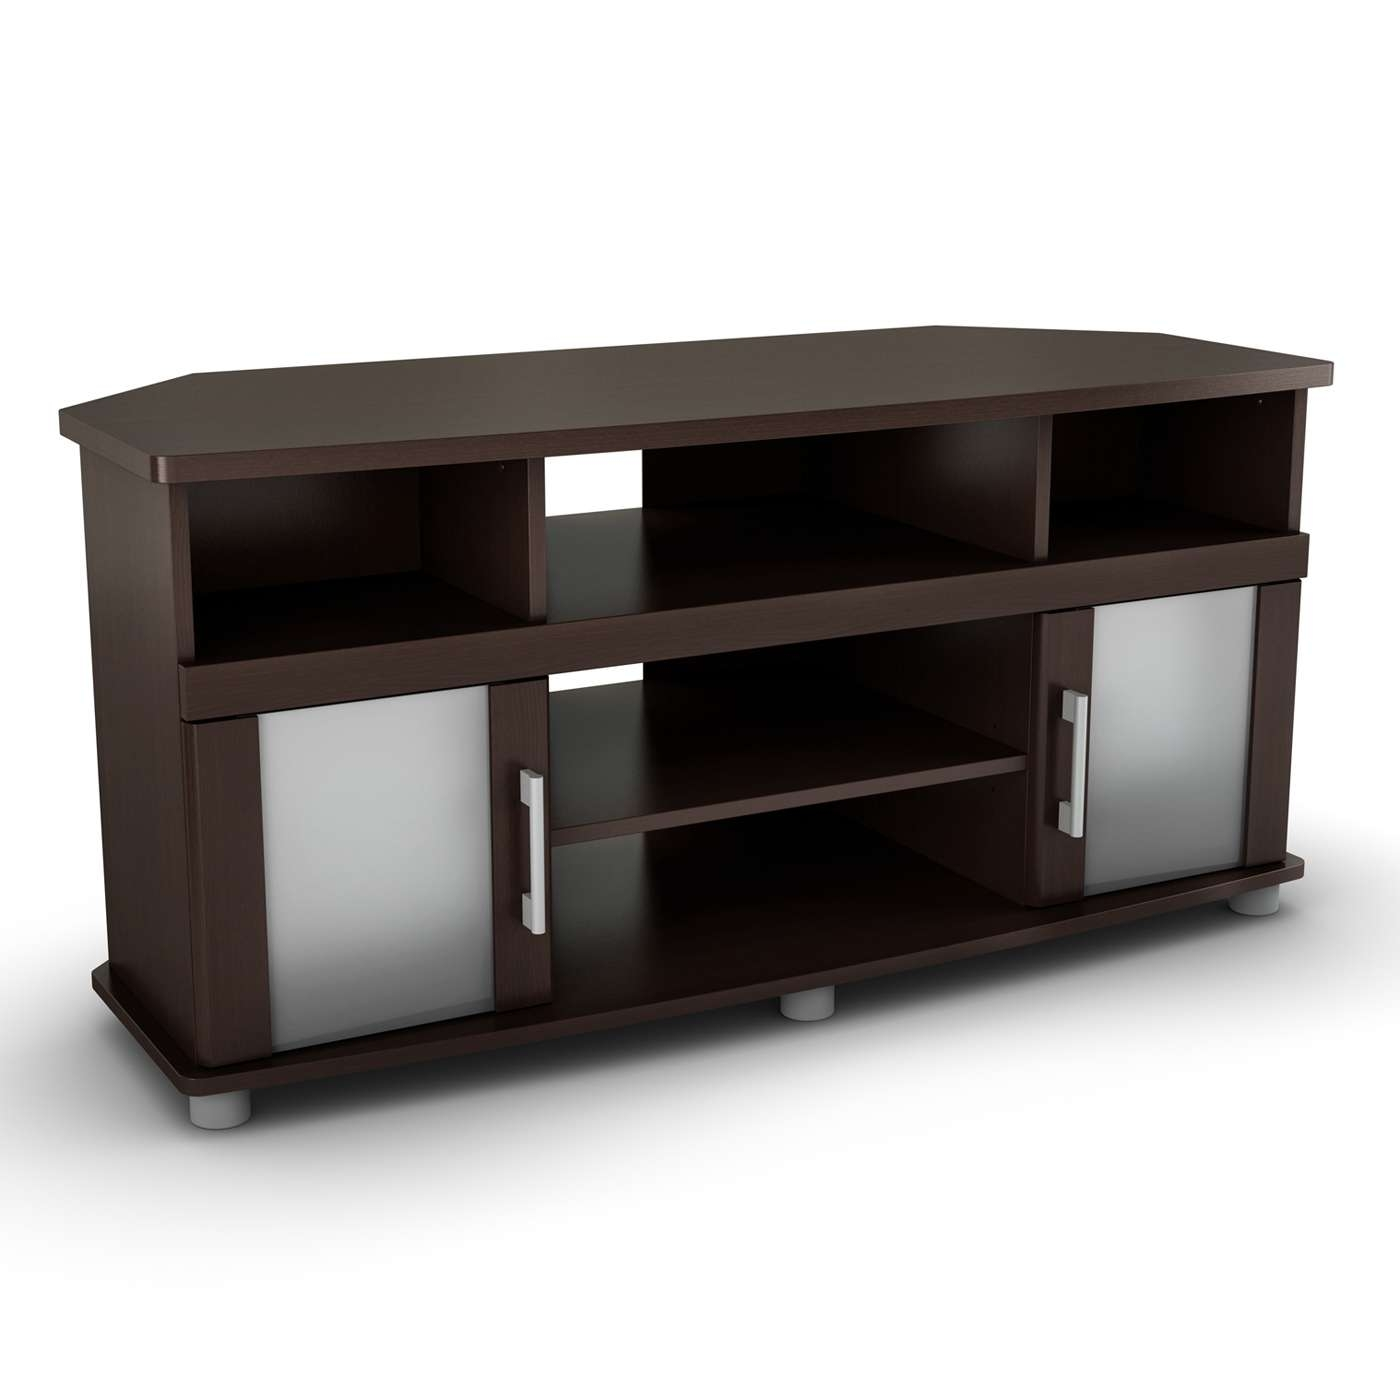 Furnitures Tv Stands Corner Fireplace More Lowes Canada Stand For Intended For Tv Stands For 70 Inch Tvs (View 5 of 20)